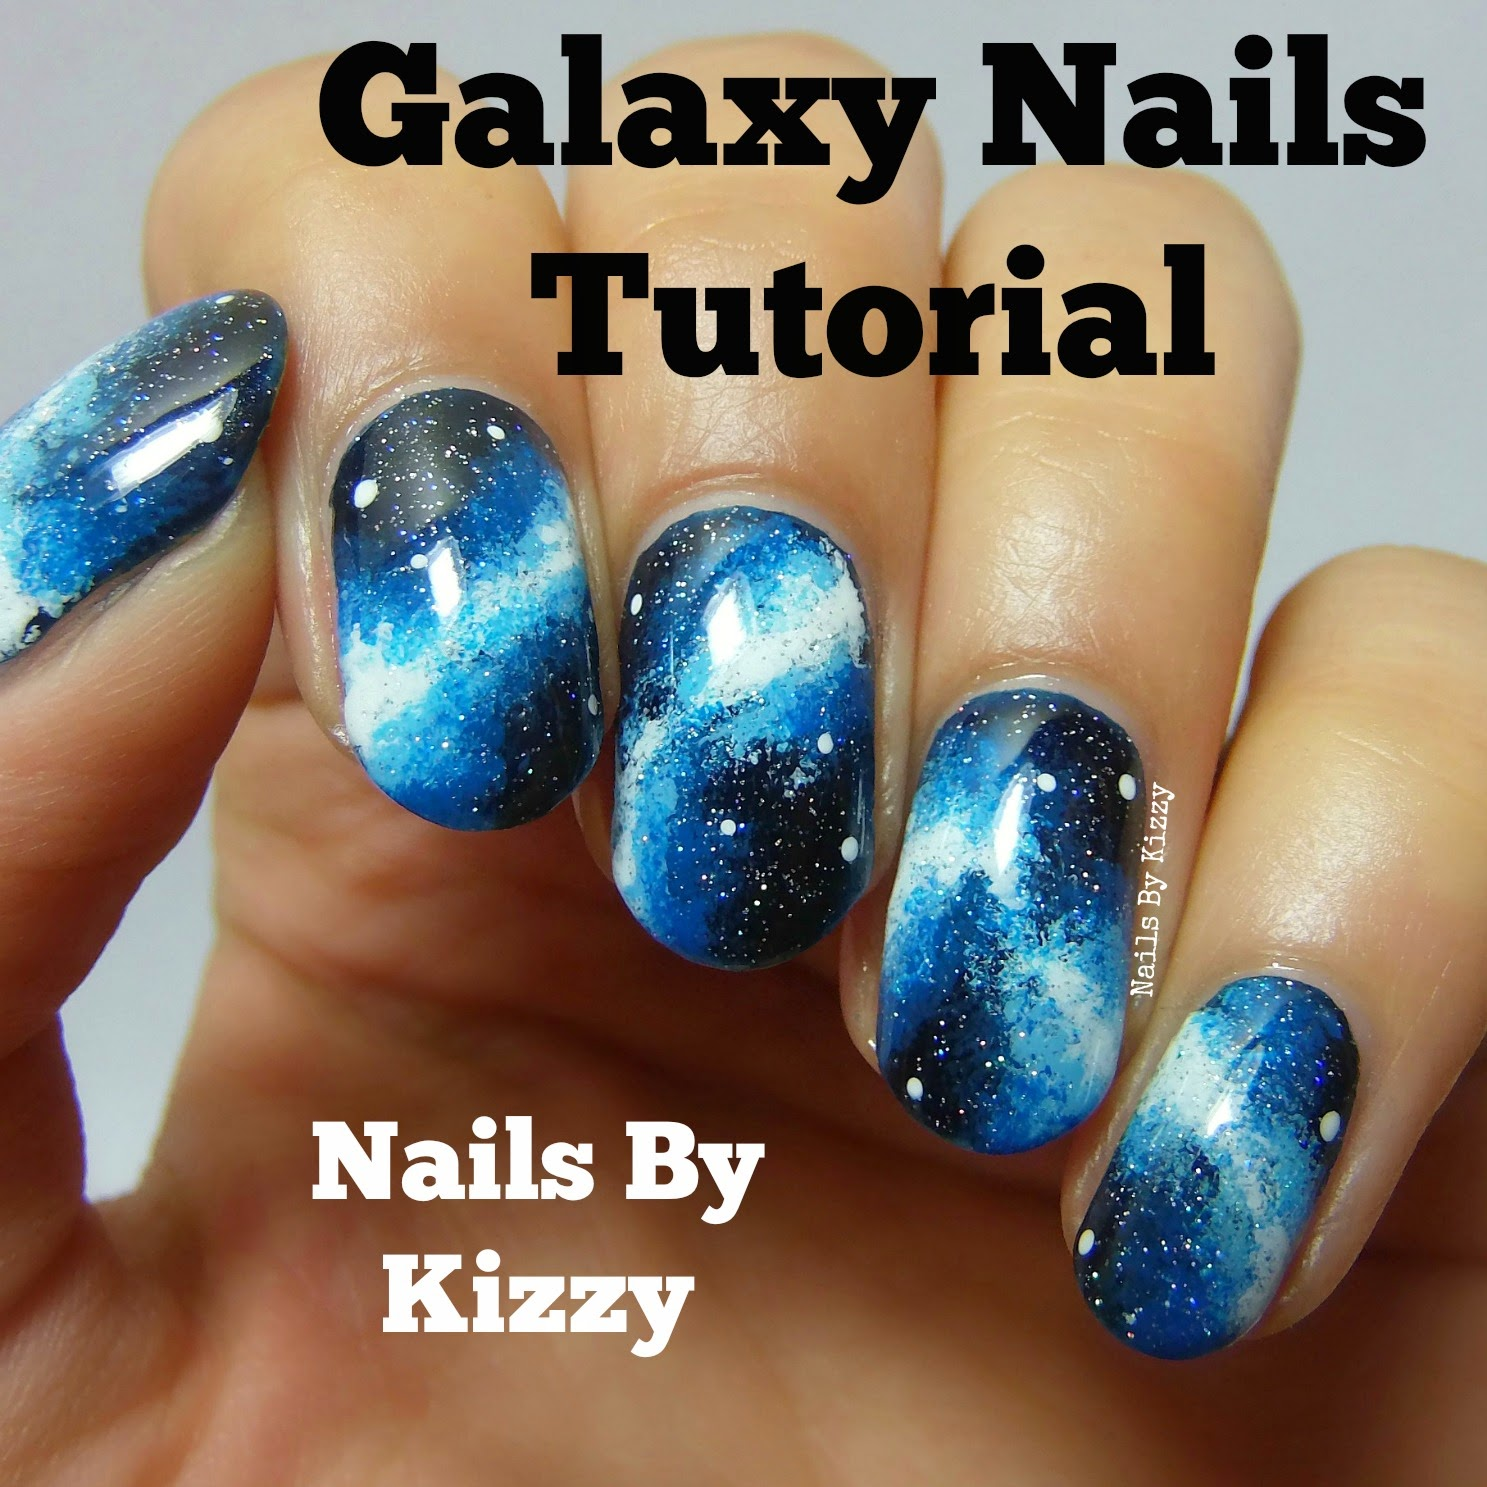 Galaxy Nails Tutorial By Kizzy